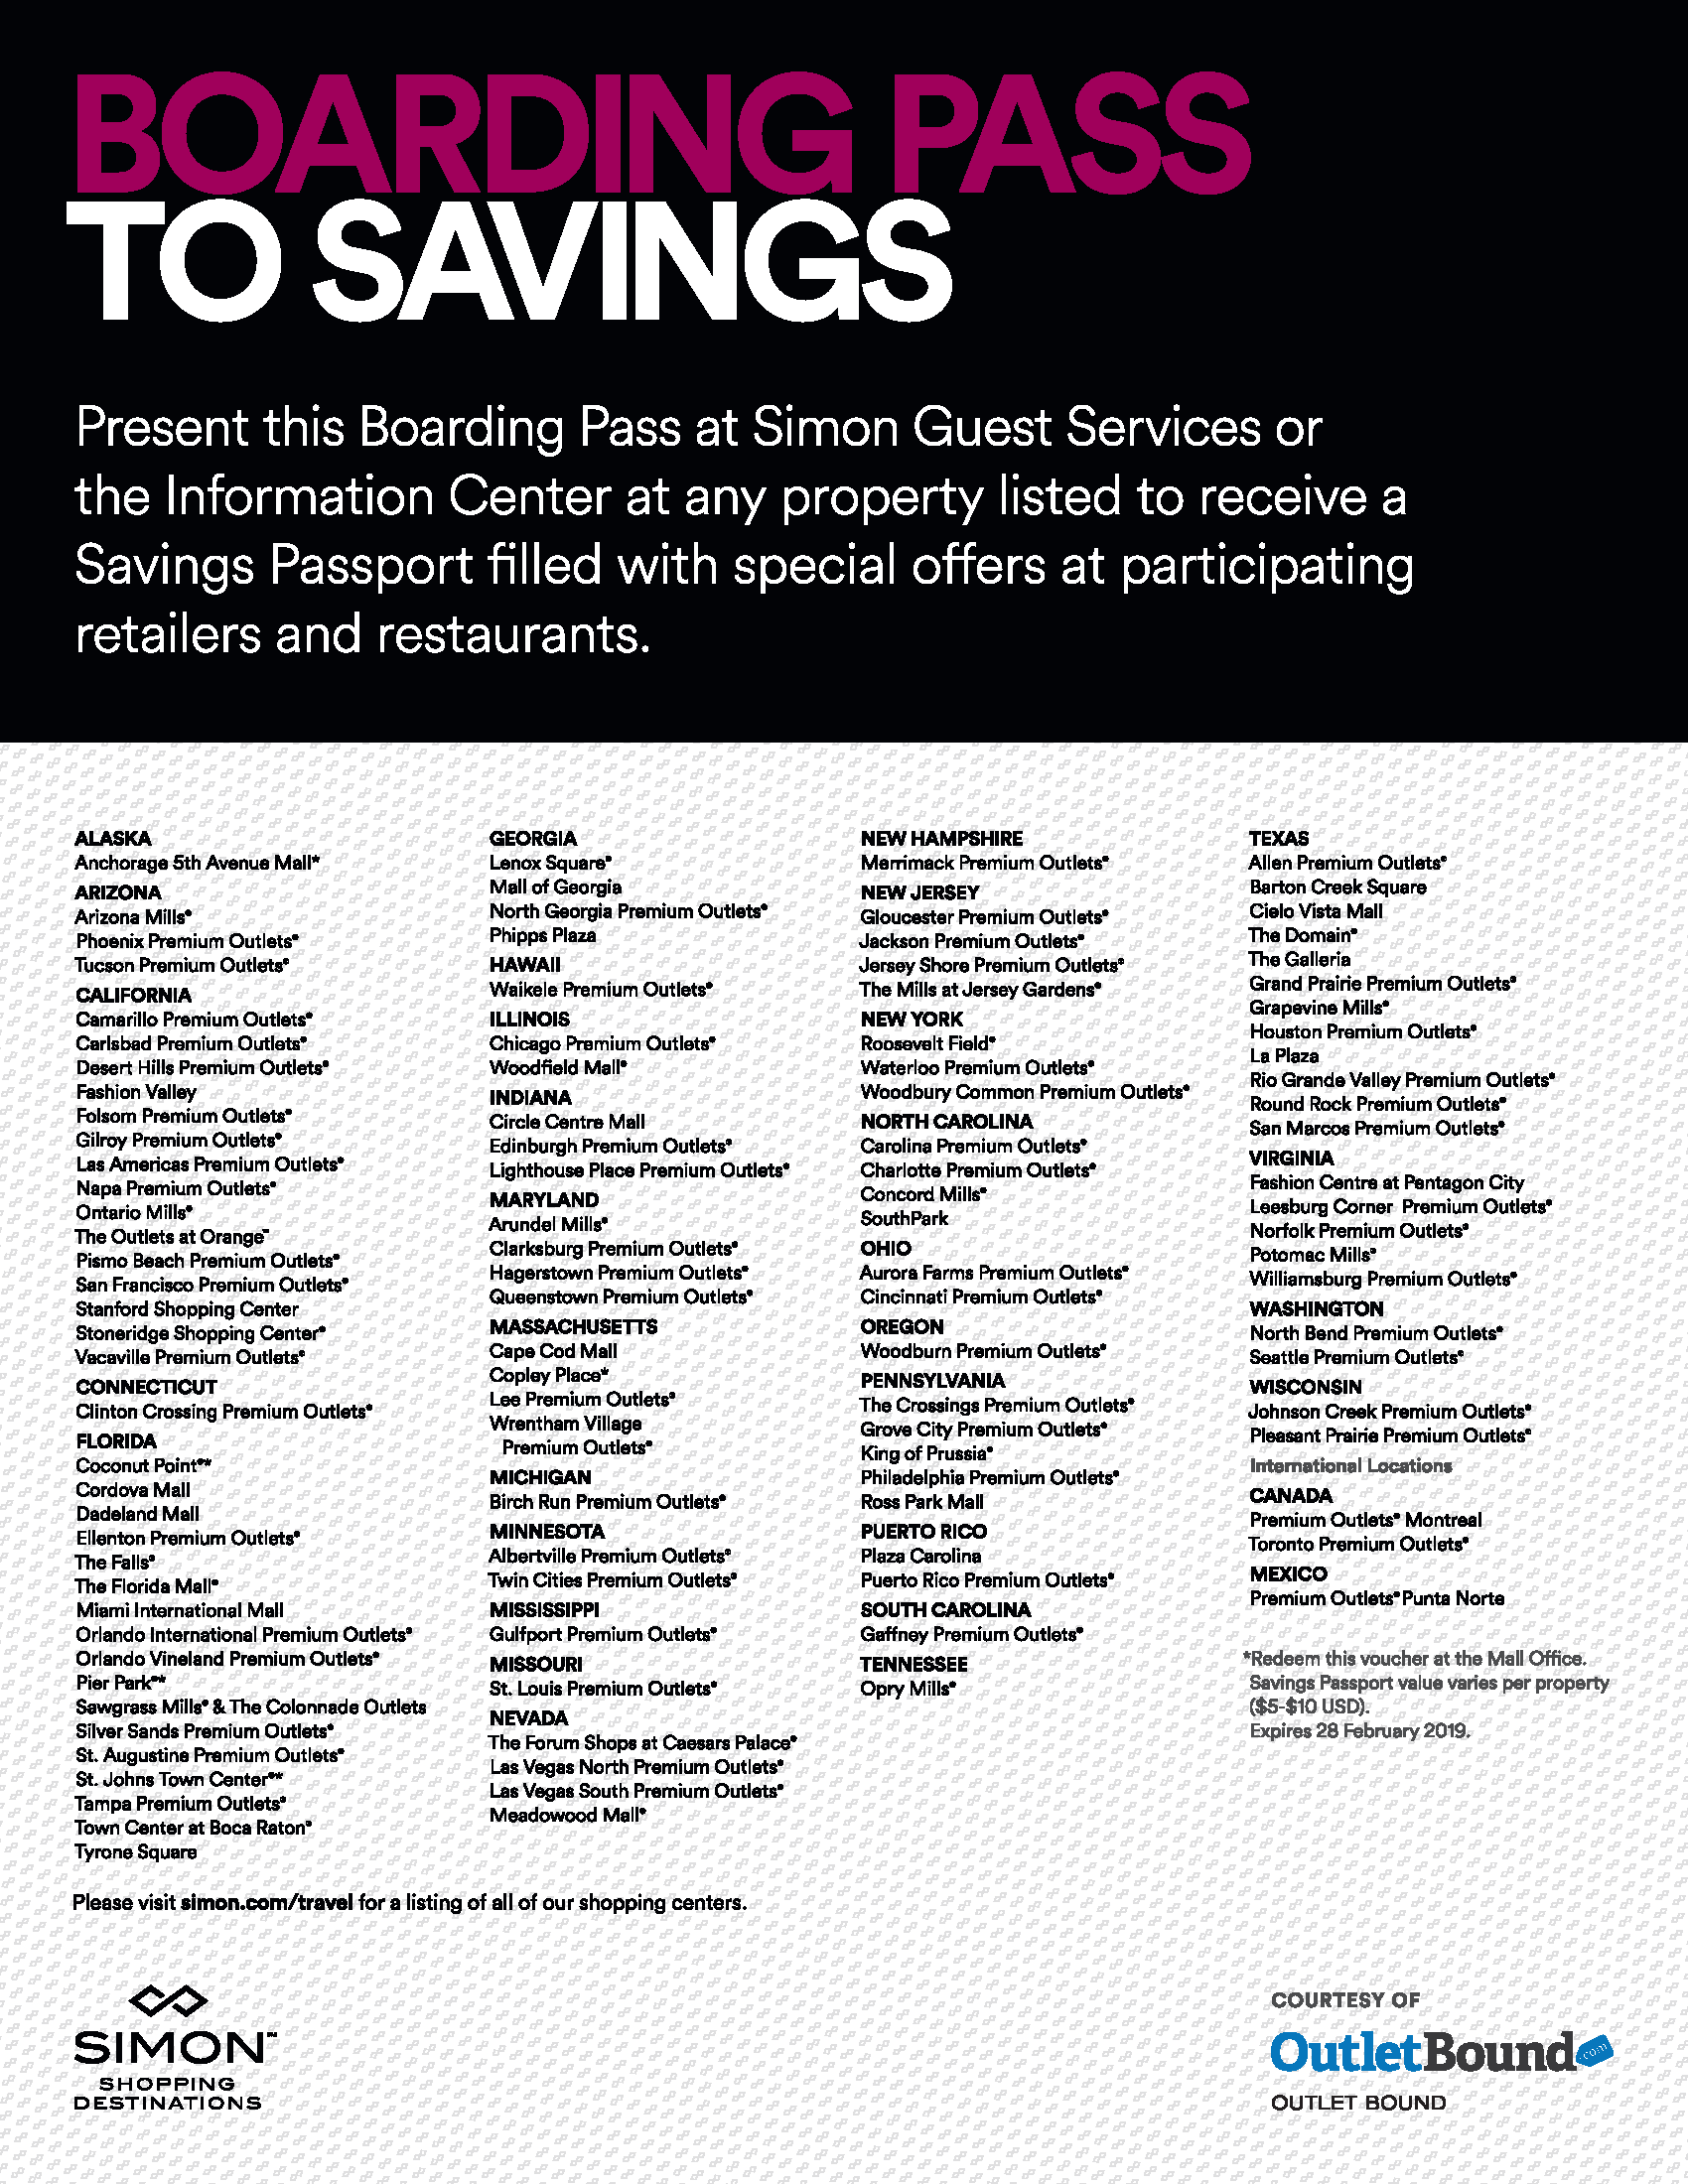 7726e58f15 Simply present a printed or digital version of this voucher to Customer  Service when visiting the mall to receive you Savings Passport.